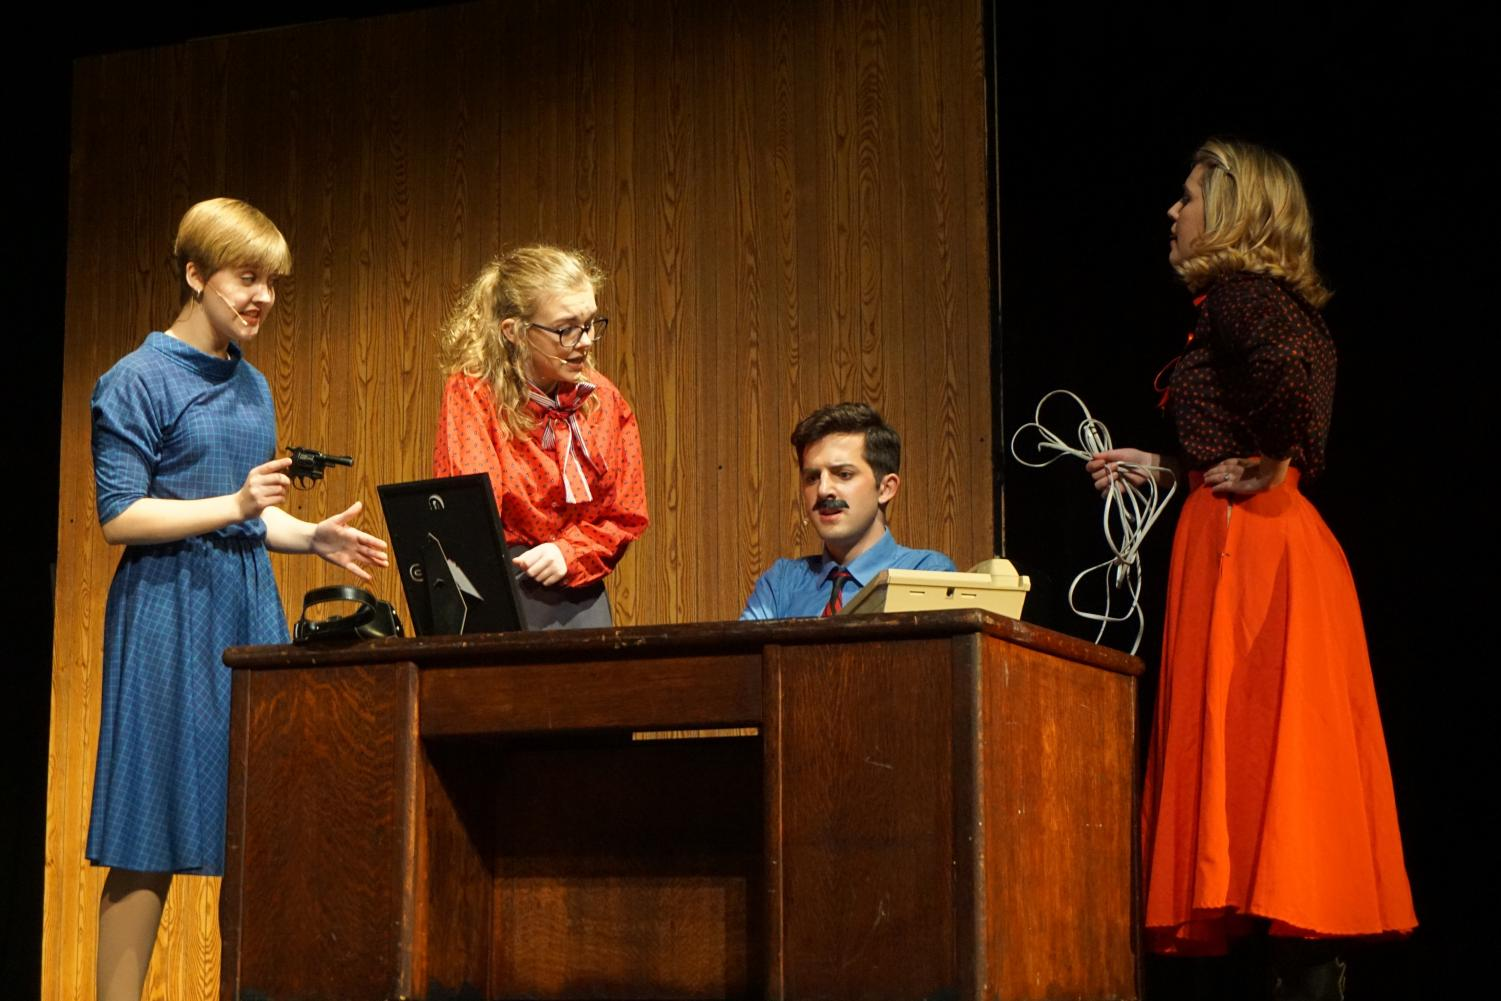 Sophomore  Phoebe McKinney, junior Isaac  Wahl and seniors Evie Nelson and Emma Yarger, perform a scene from '9 to 5 the Musical'. Opening night for the musical took place Nov. 9th with more performances to come Nov. 11, 16, 17 and 18.